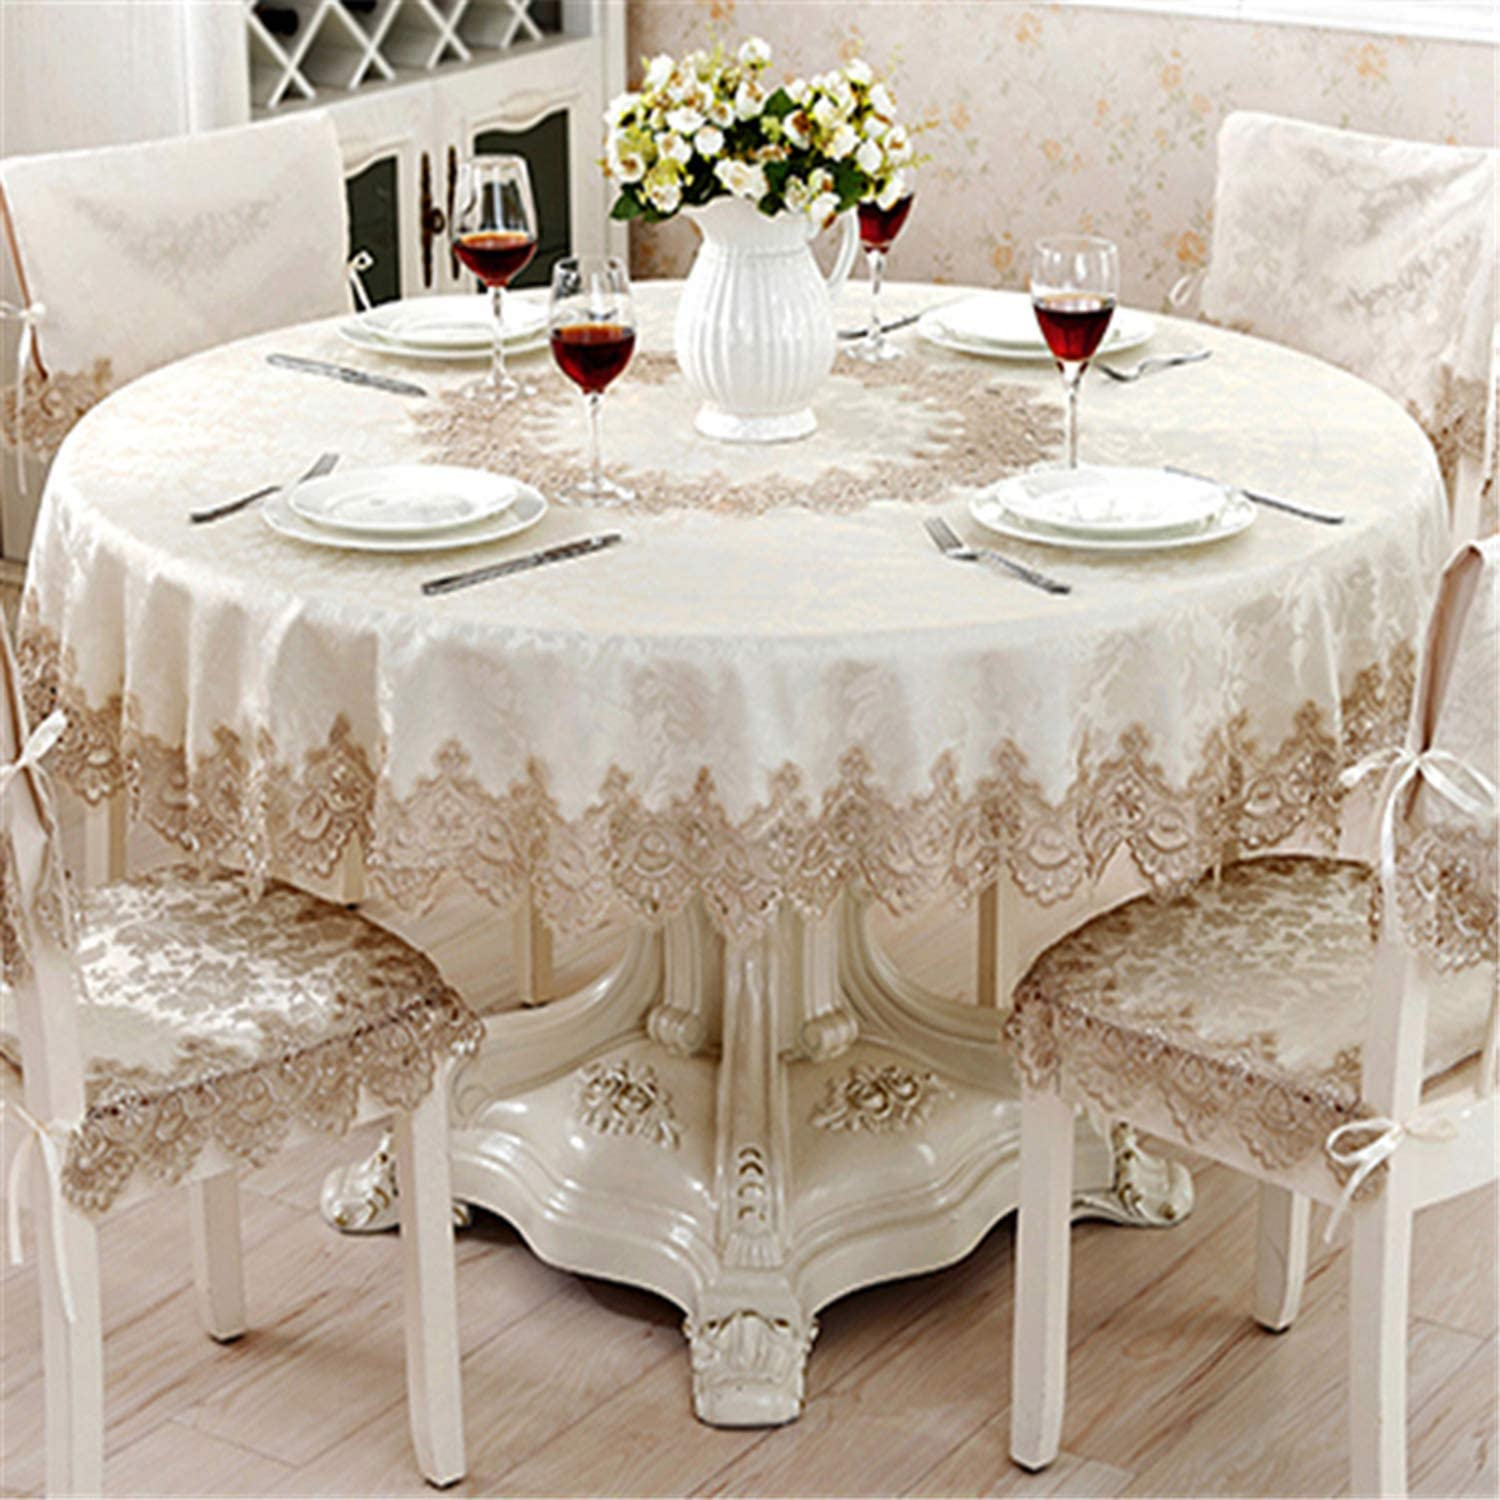 ylovego Classical Round Tablecloth For Table Decor Jacquard Lace Elegant Table Cloth Dining Table Cabinet Cover Chair Set 180cm Round